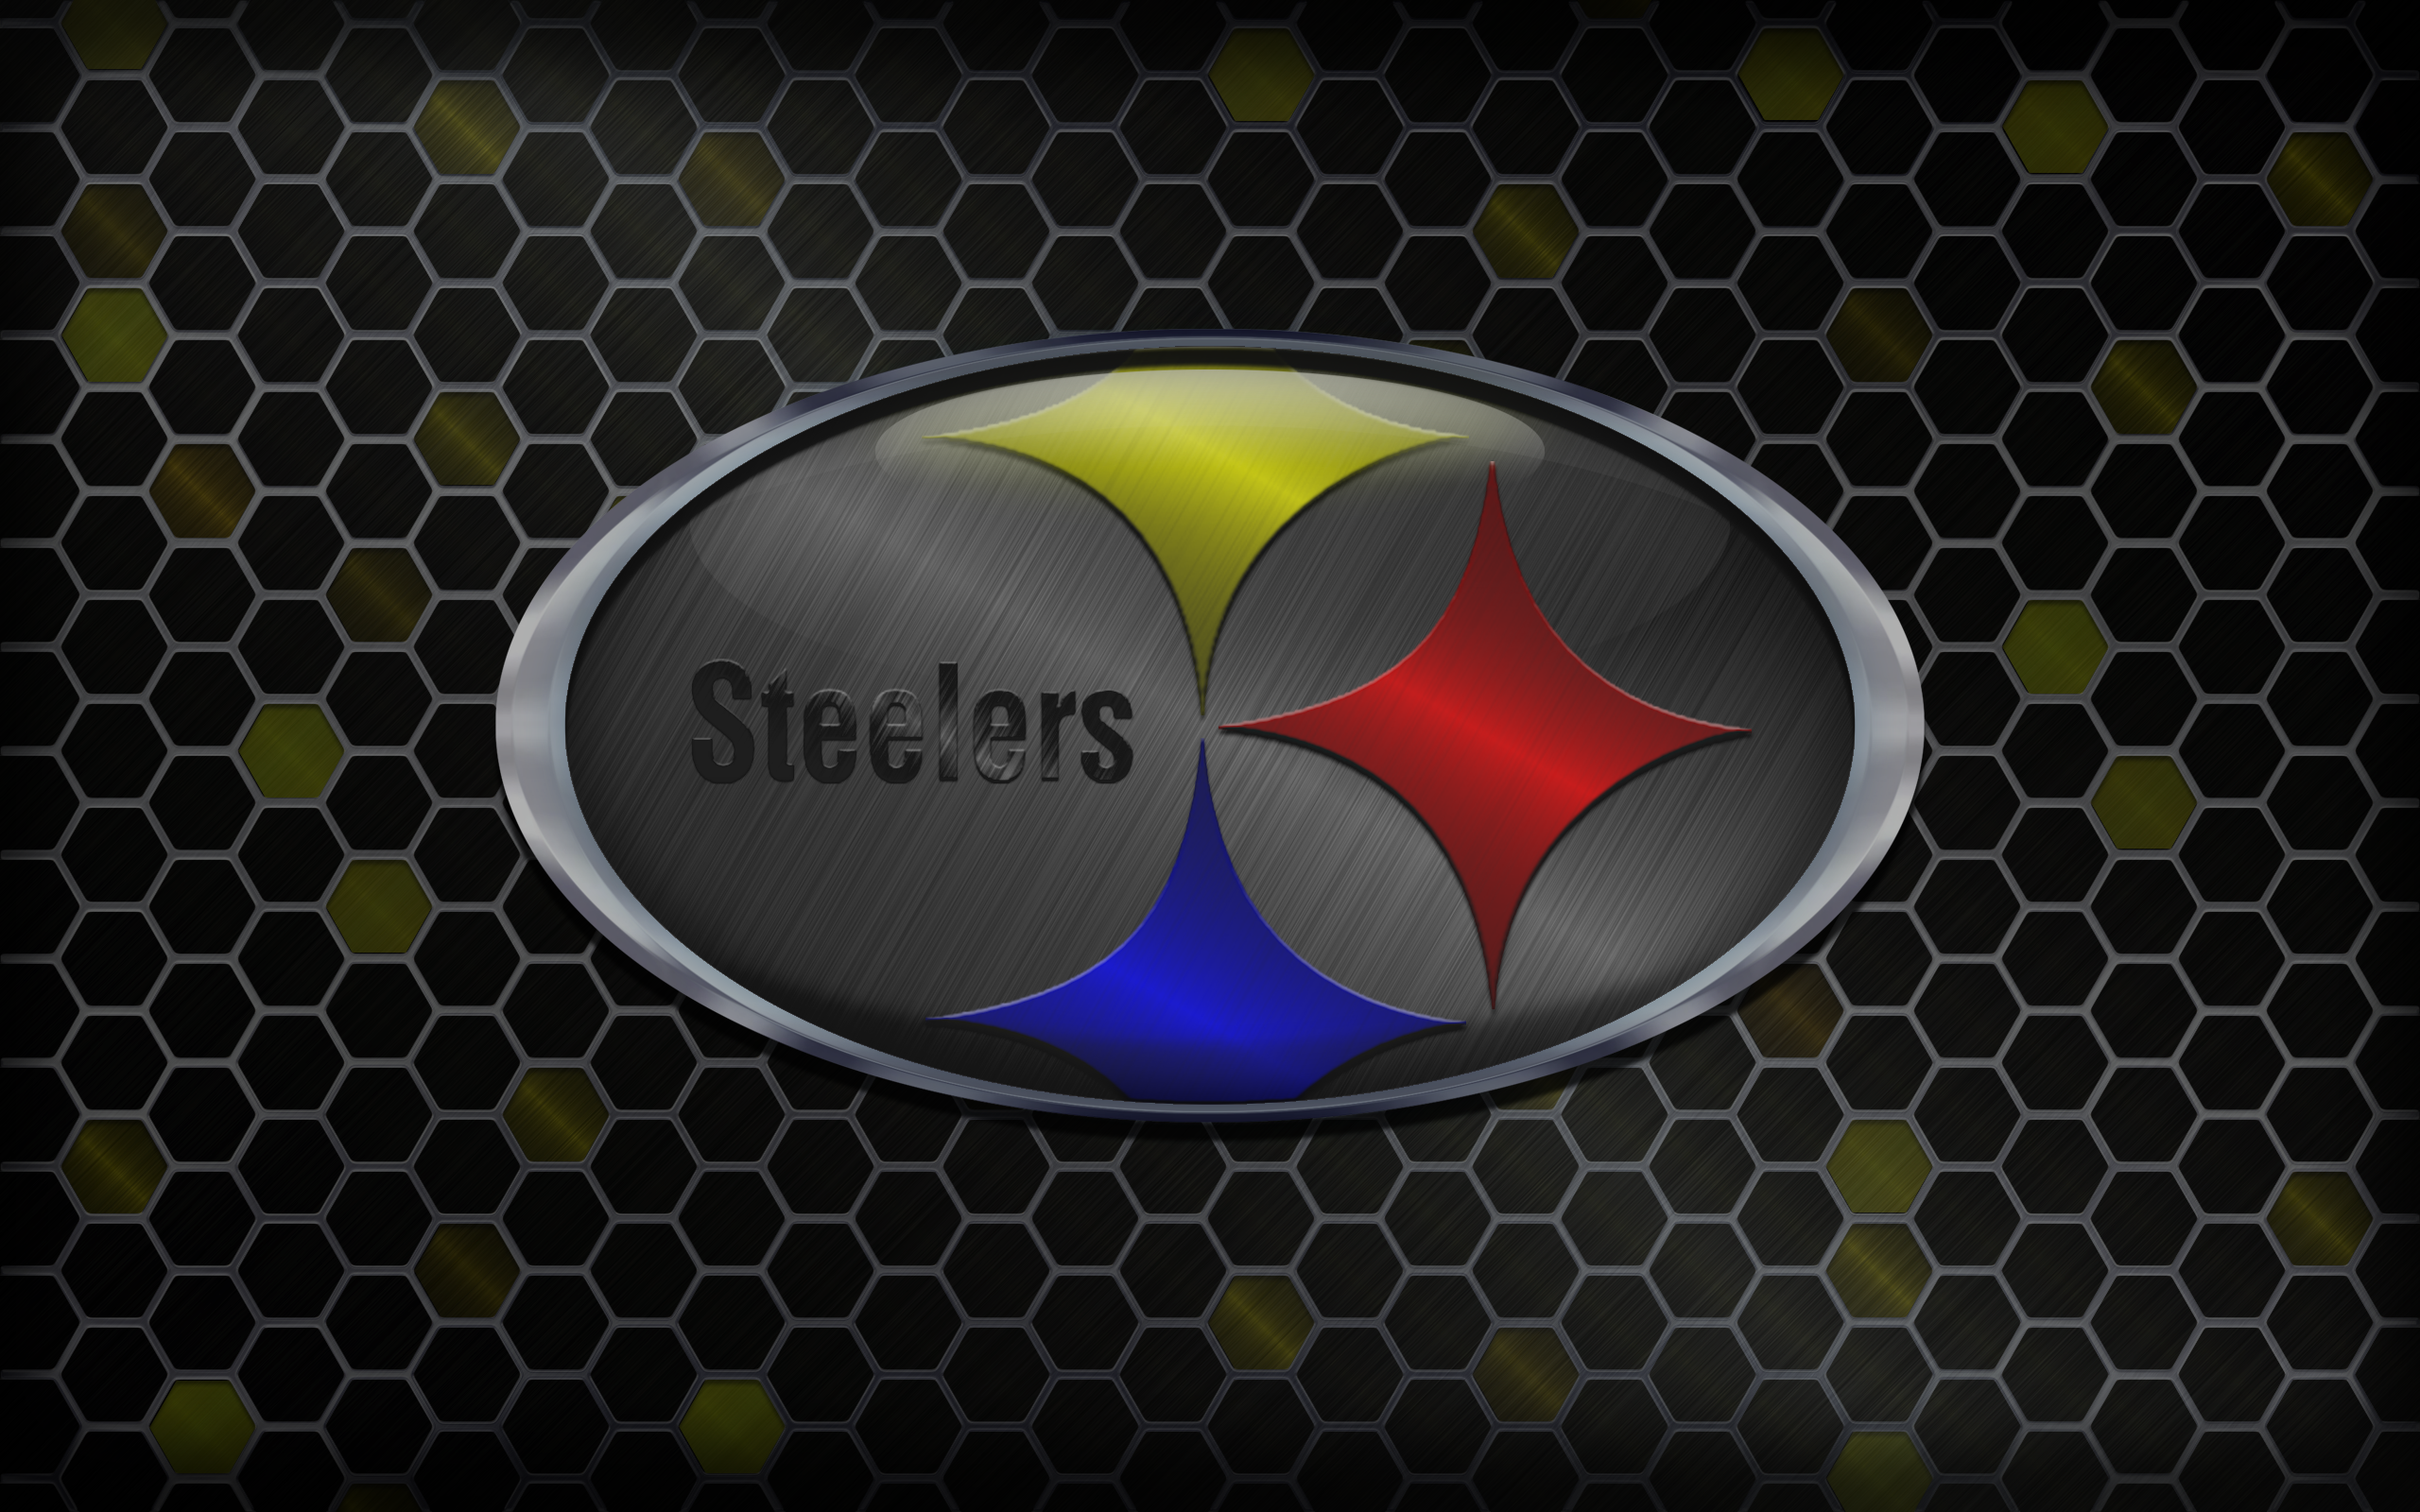 day Pittsburgh Steelers wallpaper Pittsburgh Steelers wallpapers 2560x1600 4fa48a51e